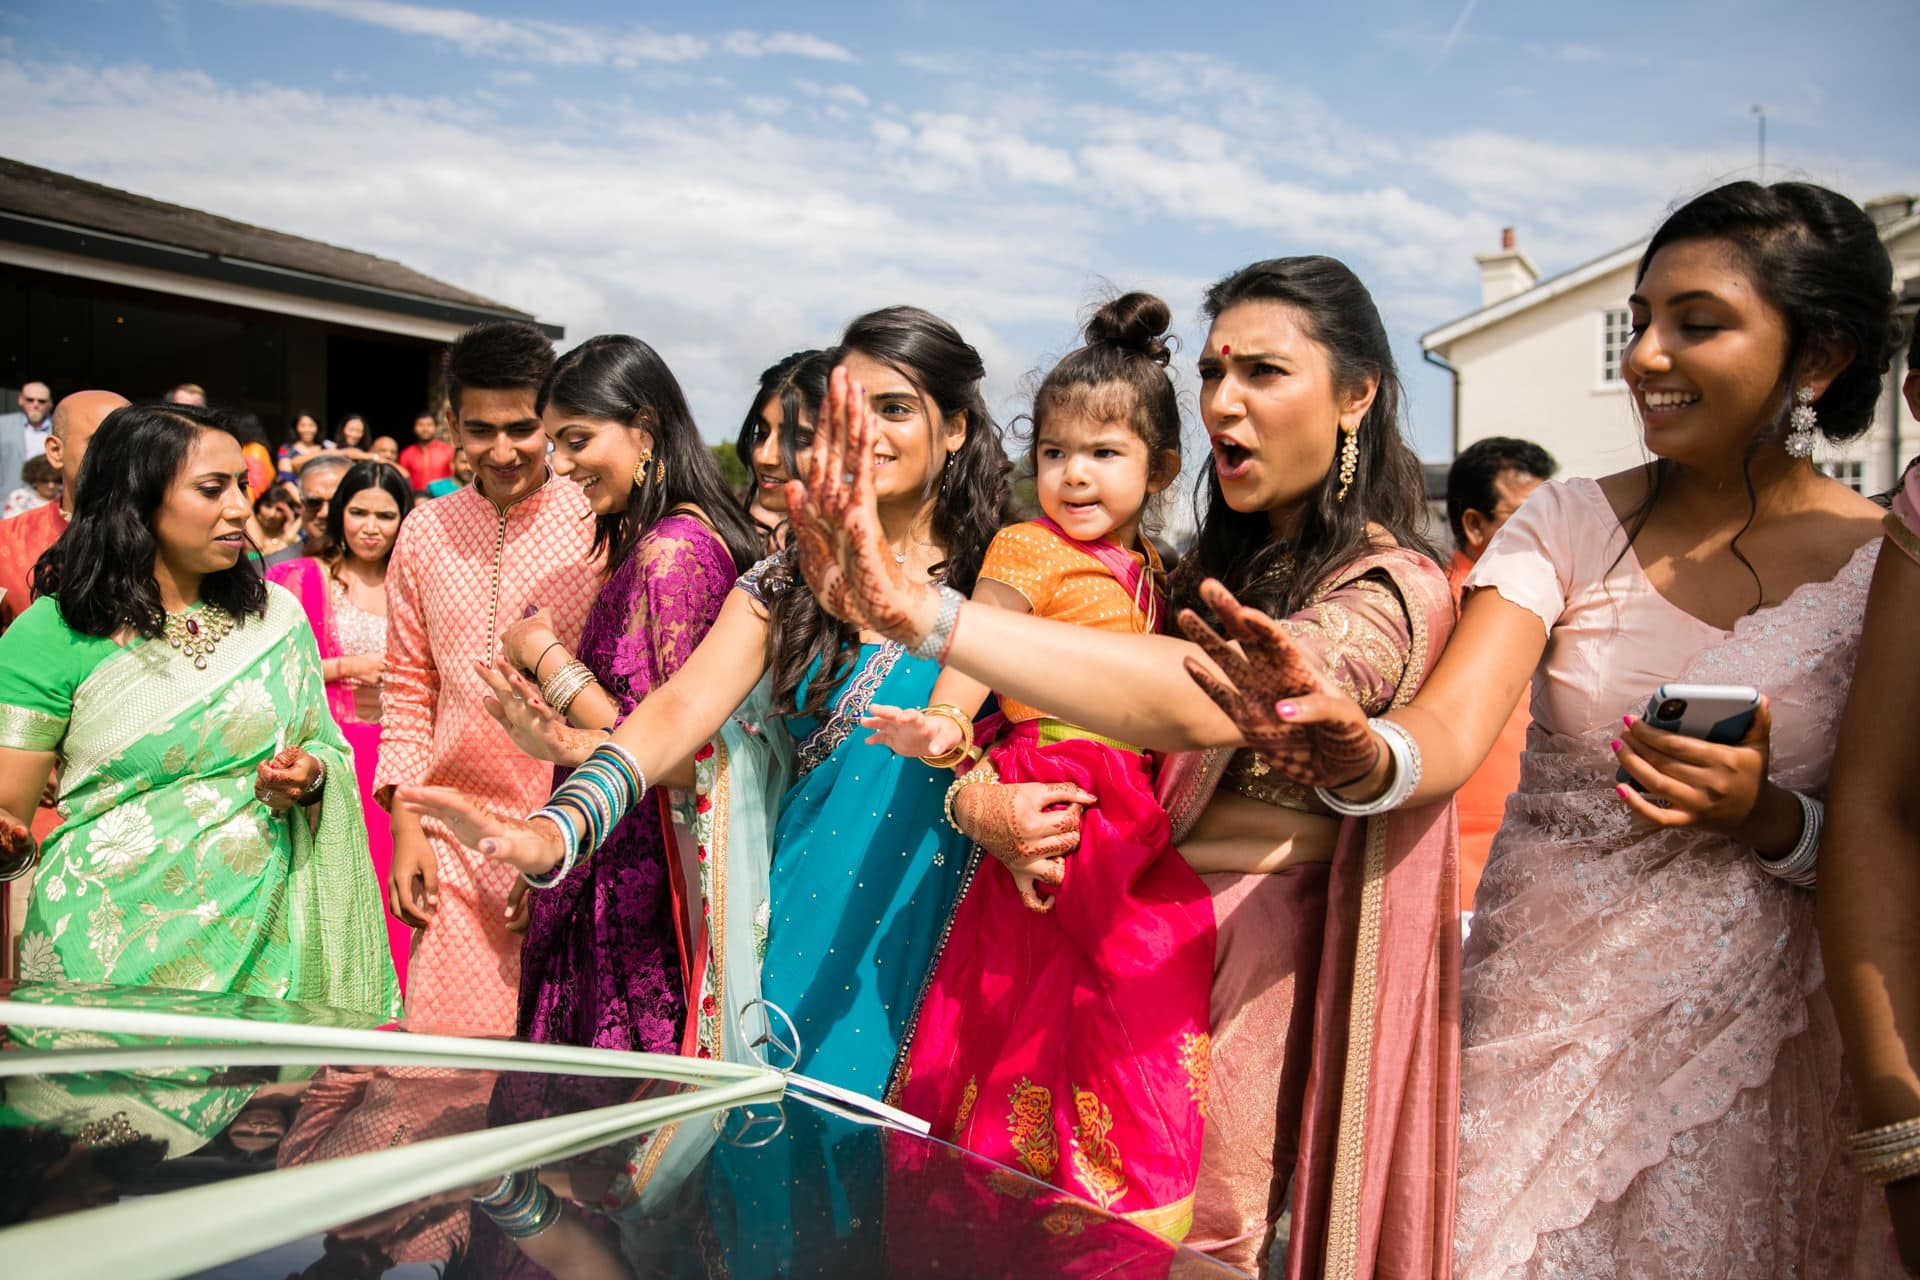 Bride's sisters stopping car